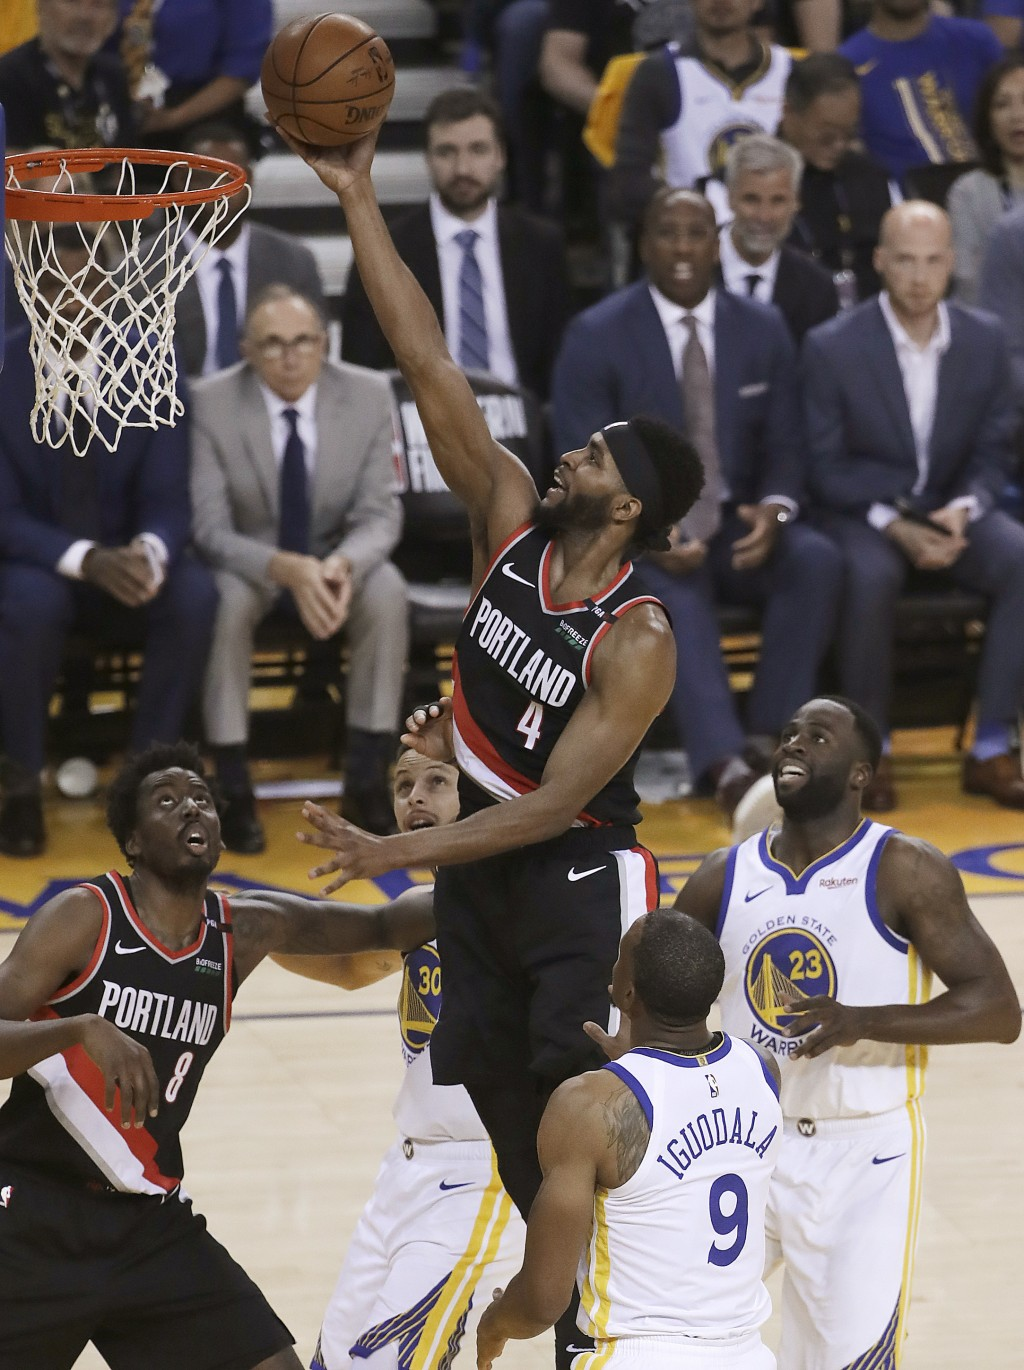 Portland Trail Blazers forward Maurice Harkless (4) shoots against the Golden State Warriors during the first half of Game 1 of the NBA basketball pla...